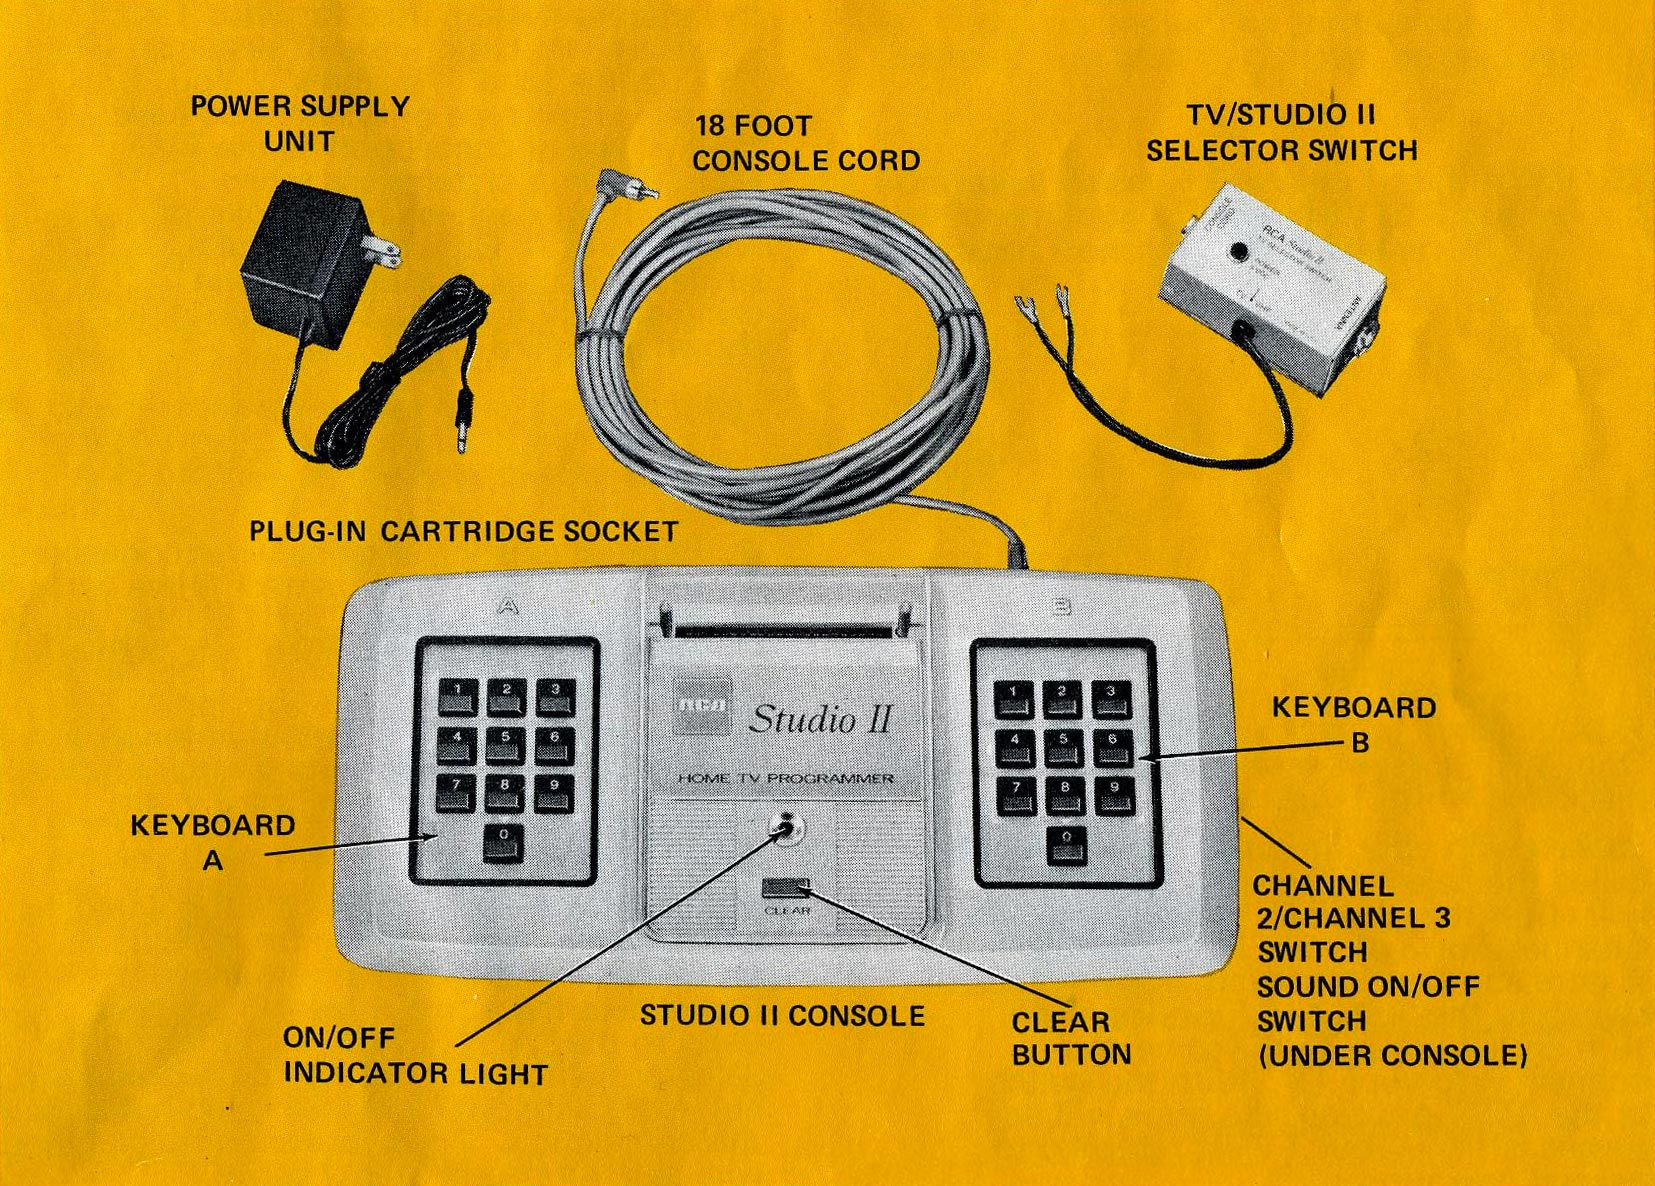 Studio II, a home video game console by RCA